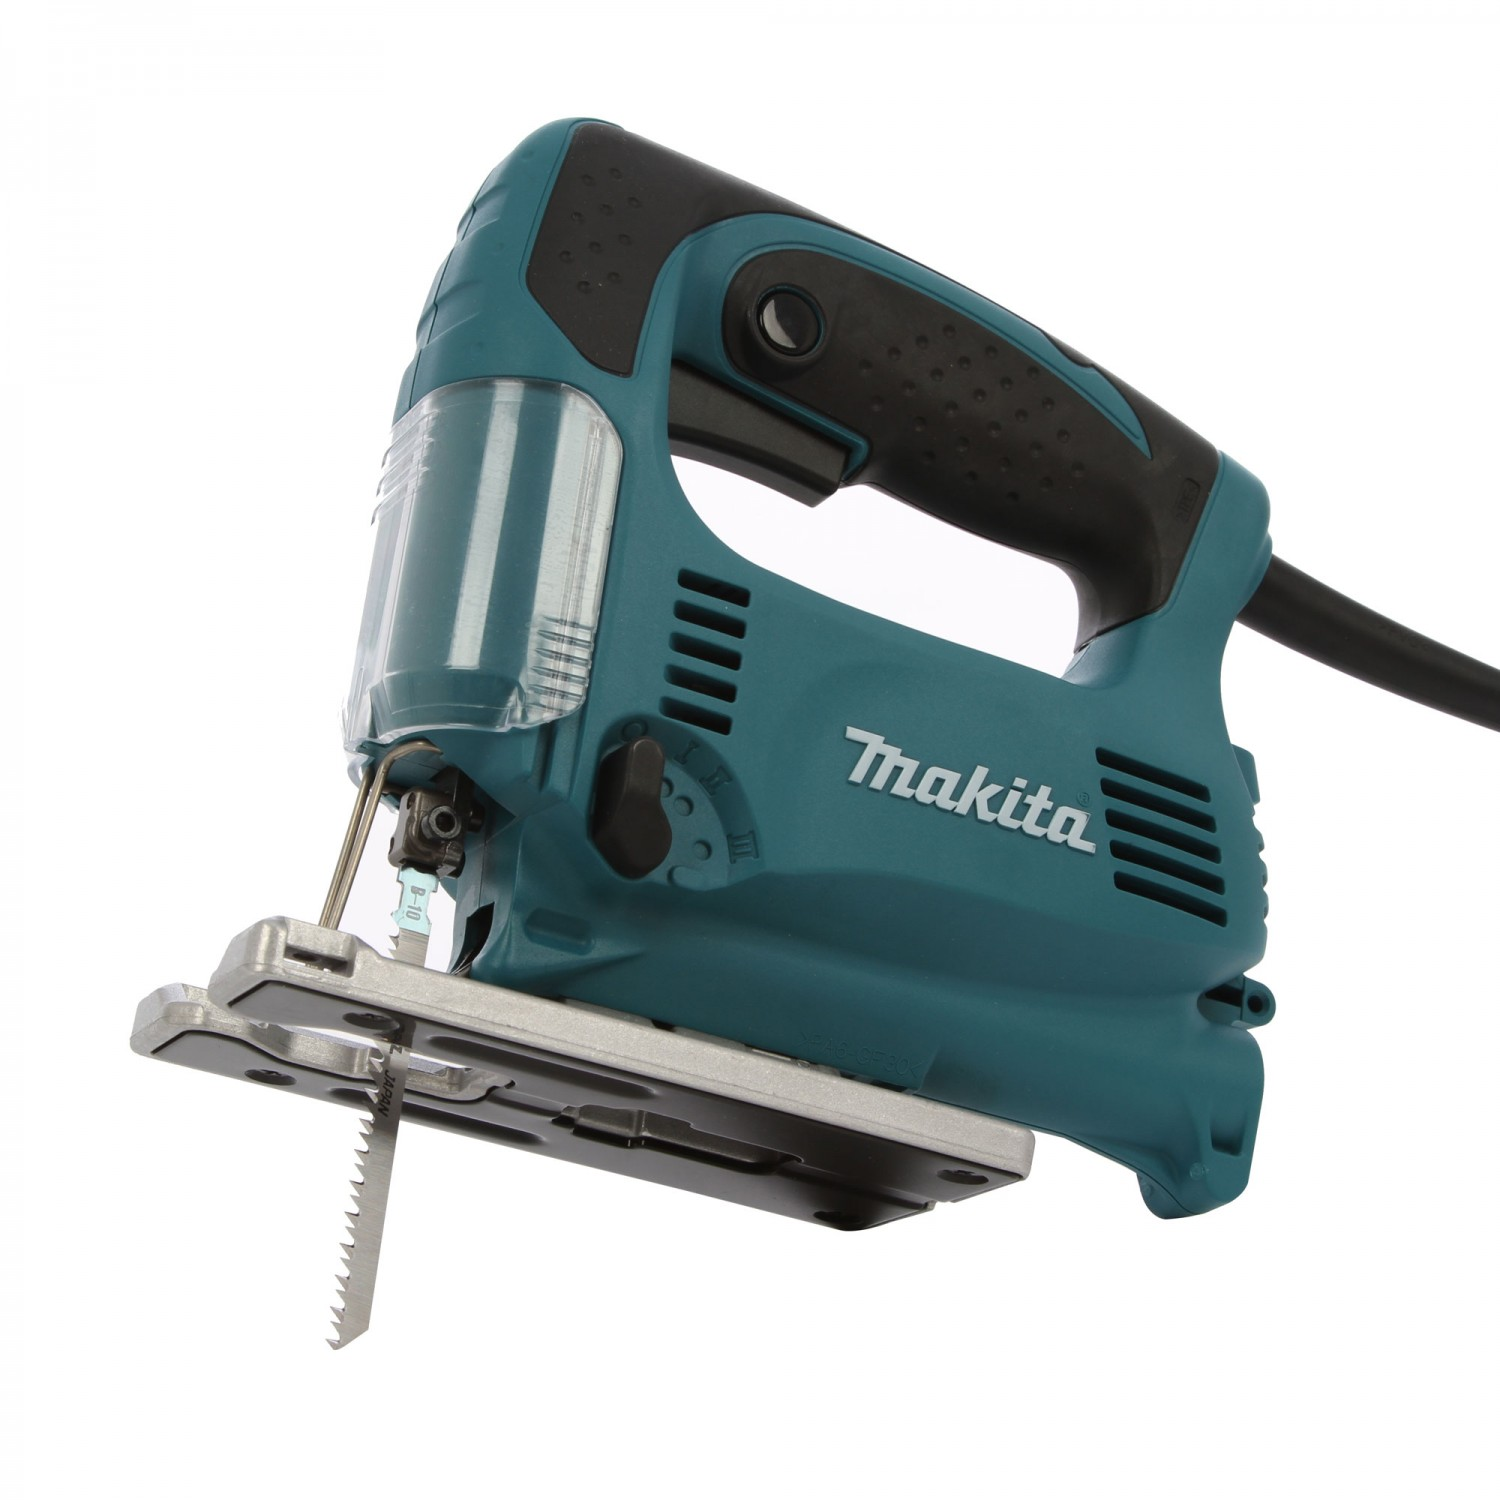 Fierastrau electric vertical, pendular, Makita 4329, 450 W